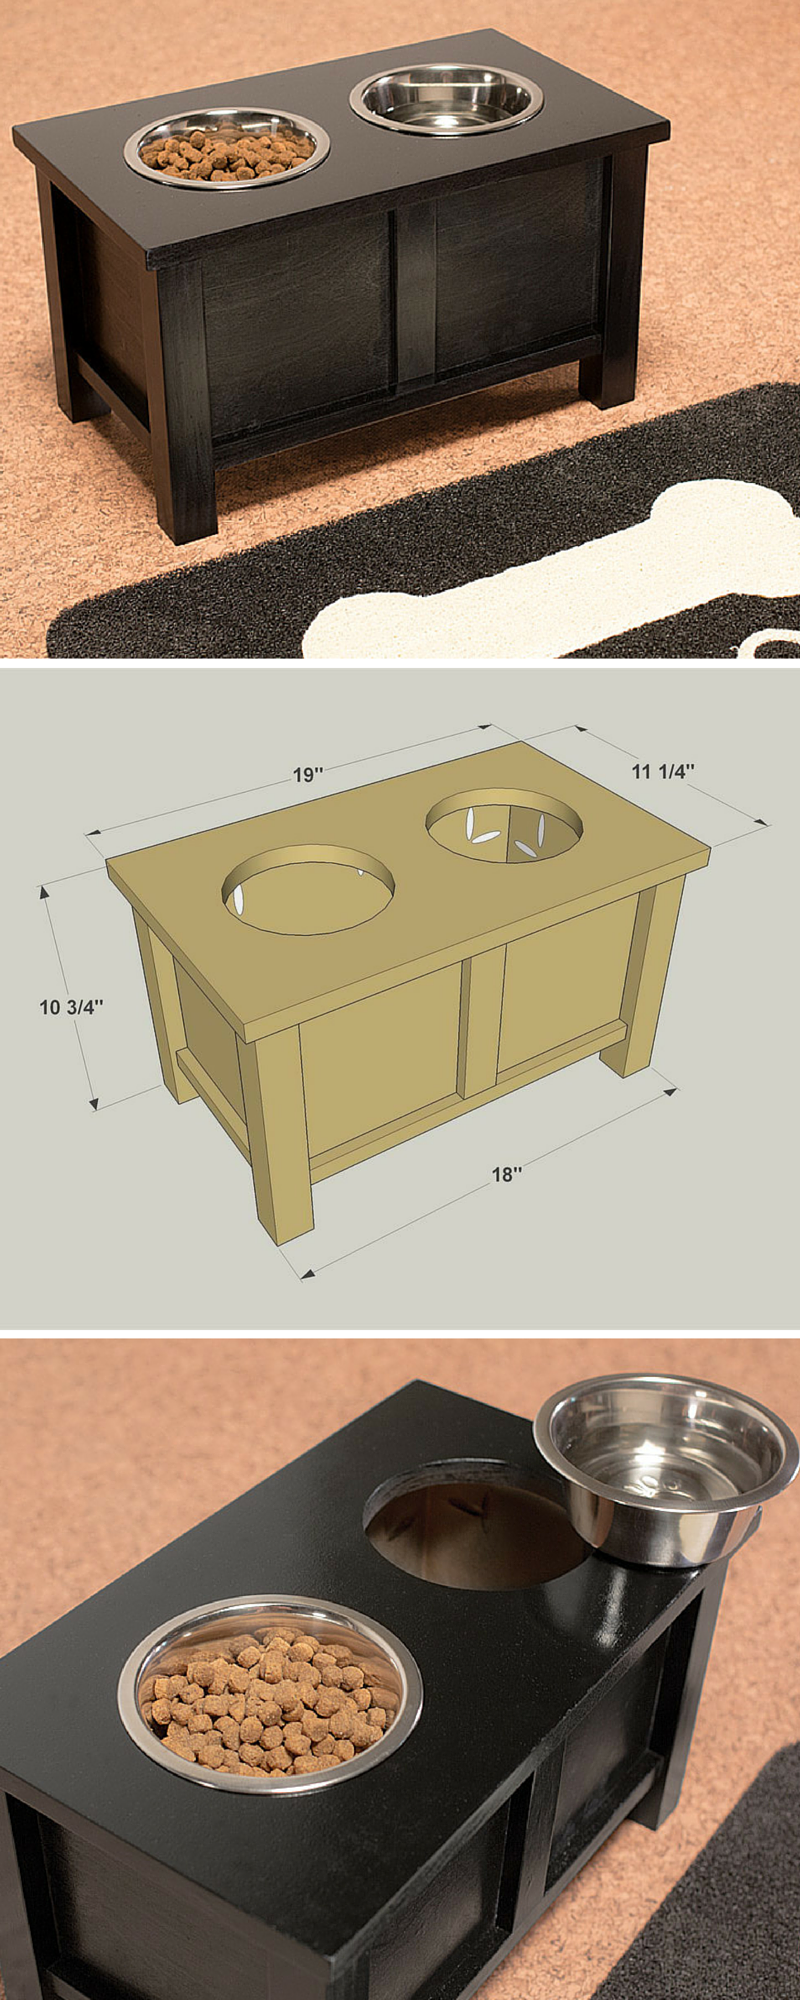 hight resolution of how to build a diy raised dog bowl stand free printable project plans at buildsomething com elevate your dog s dining experience with a raised stand for